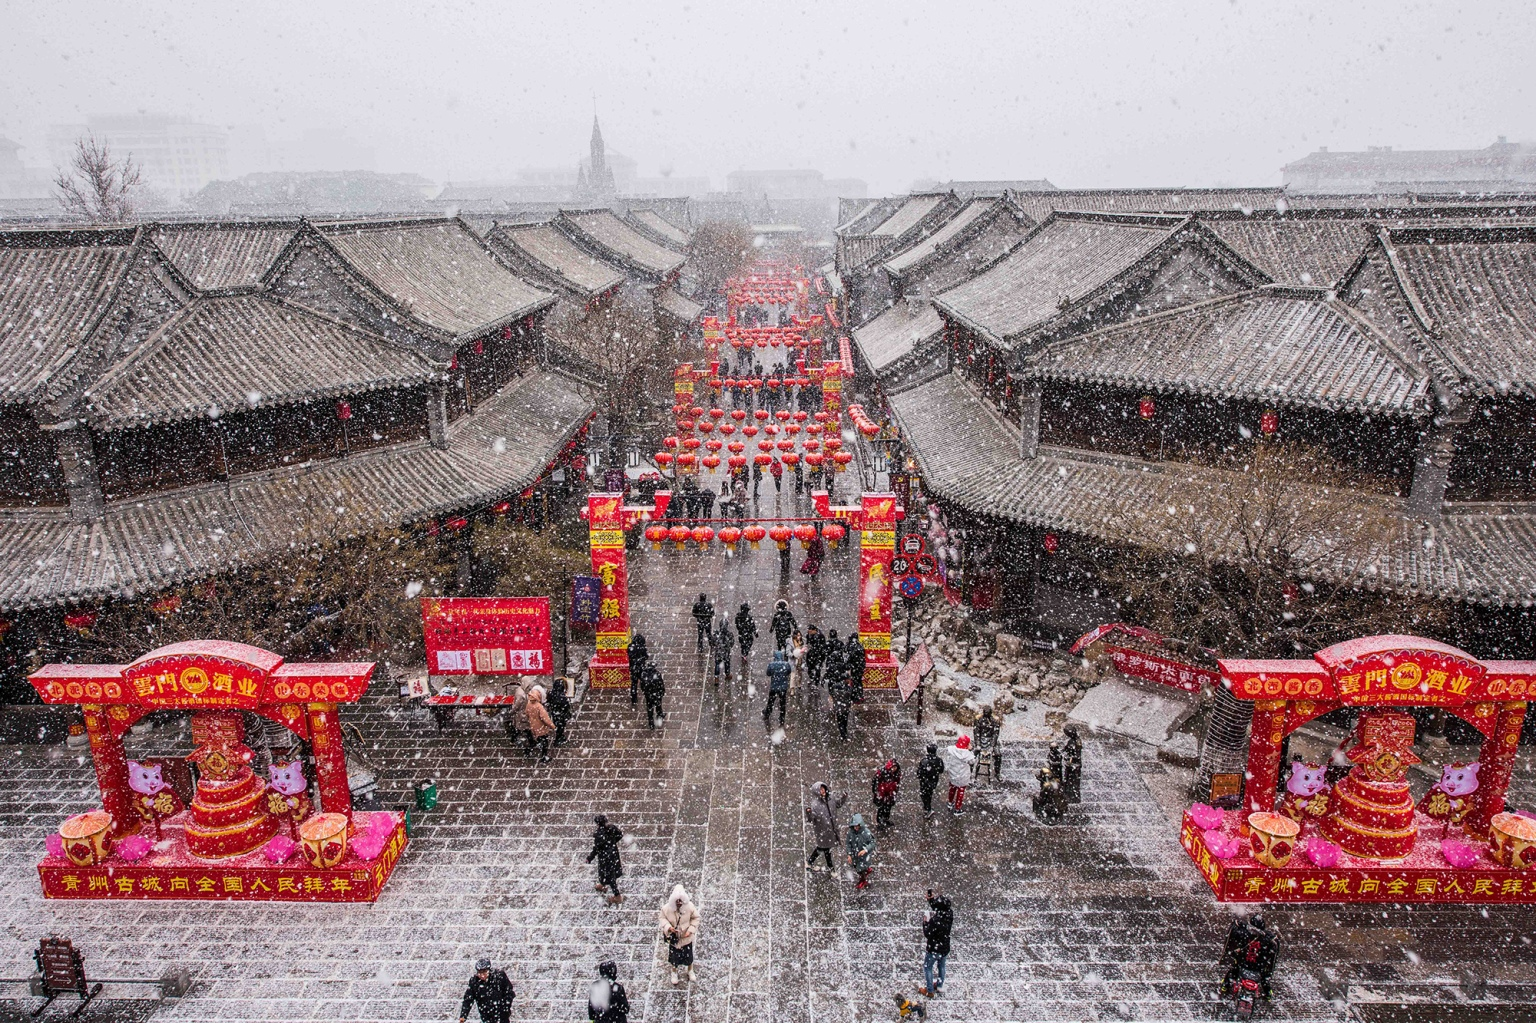 People walk under red lanterns in the snow at a scenic area during the Chinese Spring Festival holiday in Qingzhou, China, on Feb. 7. (VCG via Getty Images)